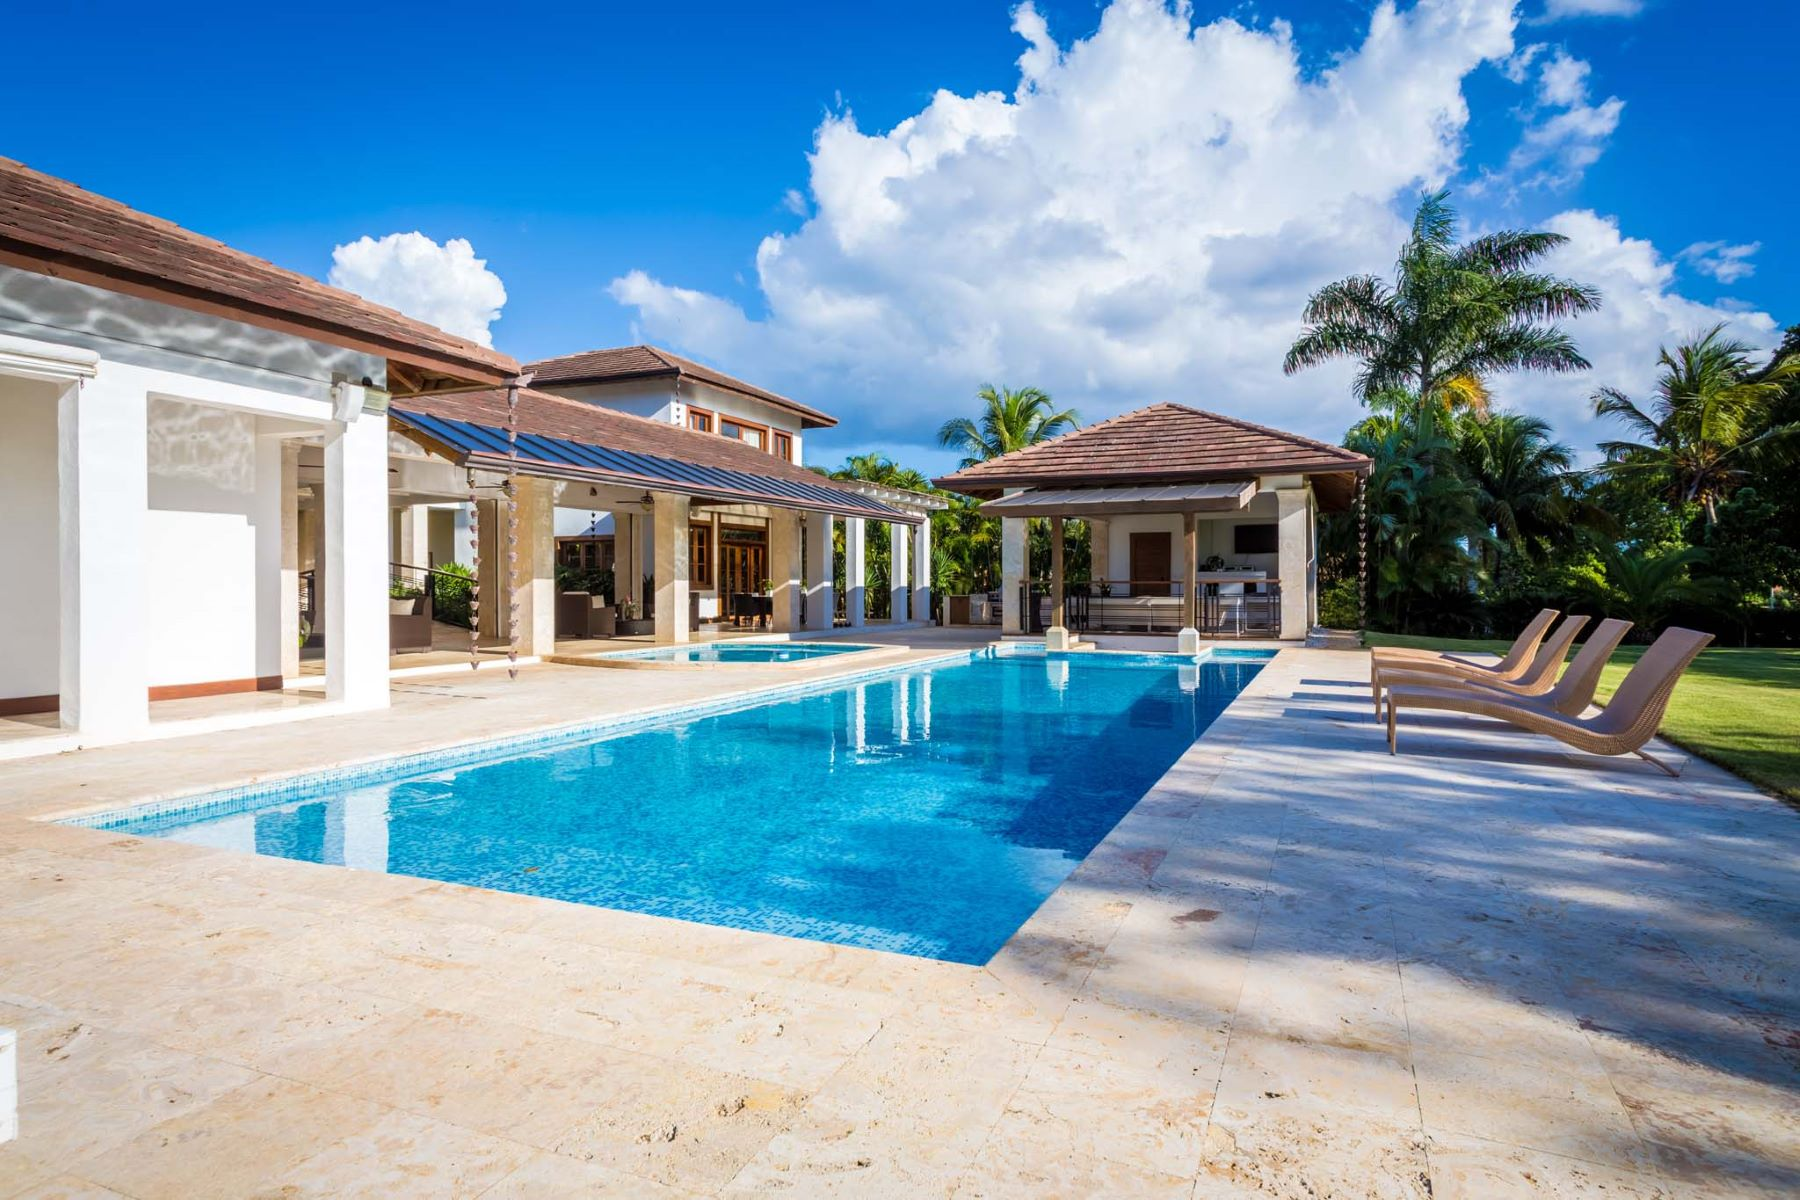 Casa Unifamiliar por un Venta en A Tropical-Modern Mansion with Vibrant Golf View designed for a family of 20 Casa De Campo, La Romana, República Dominicana